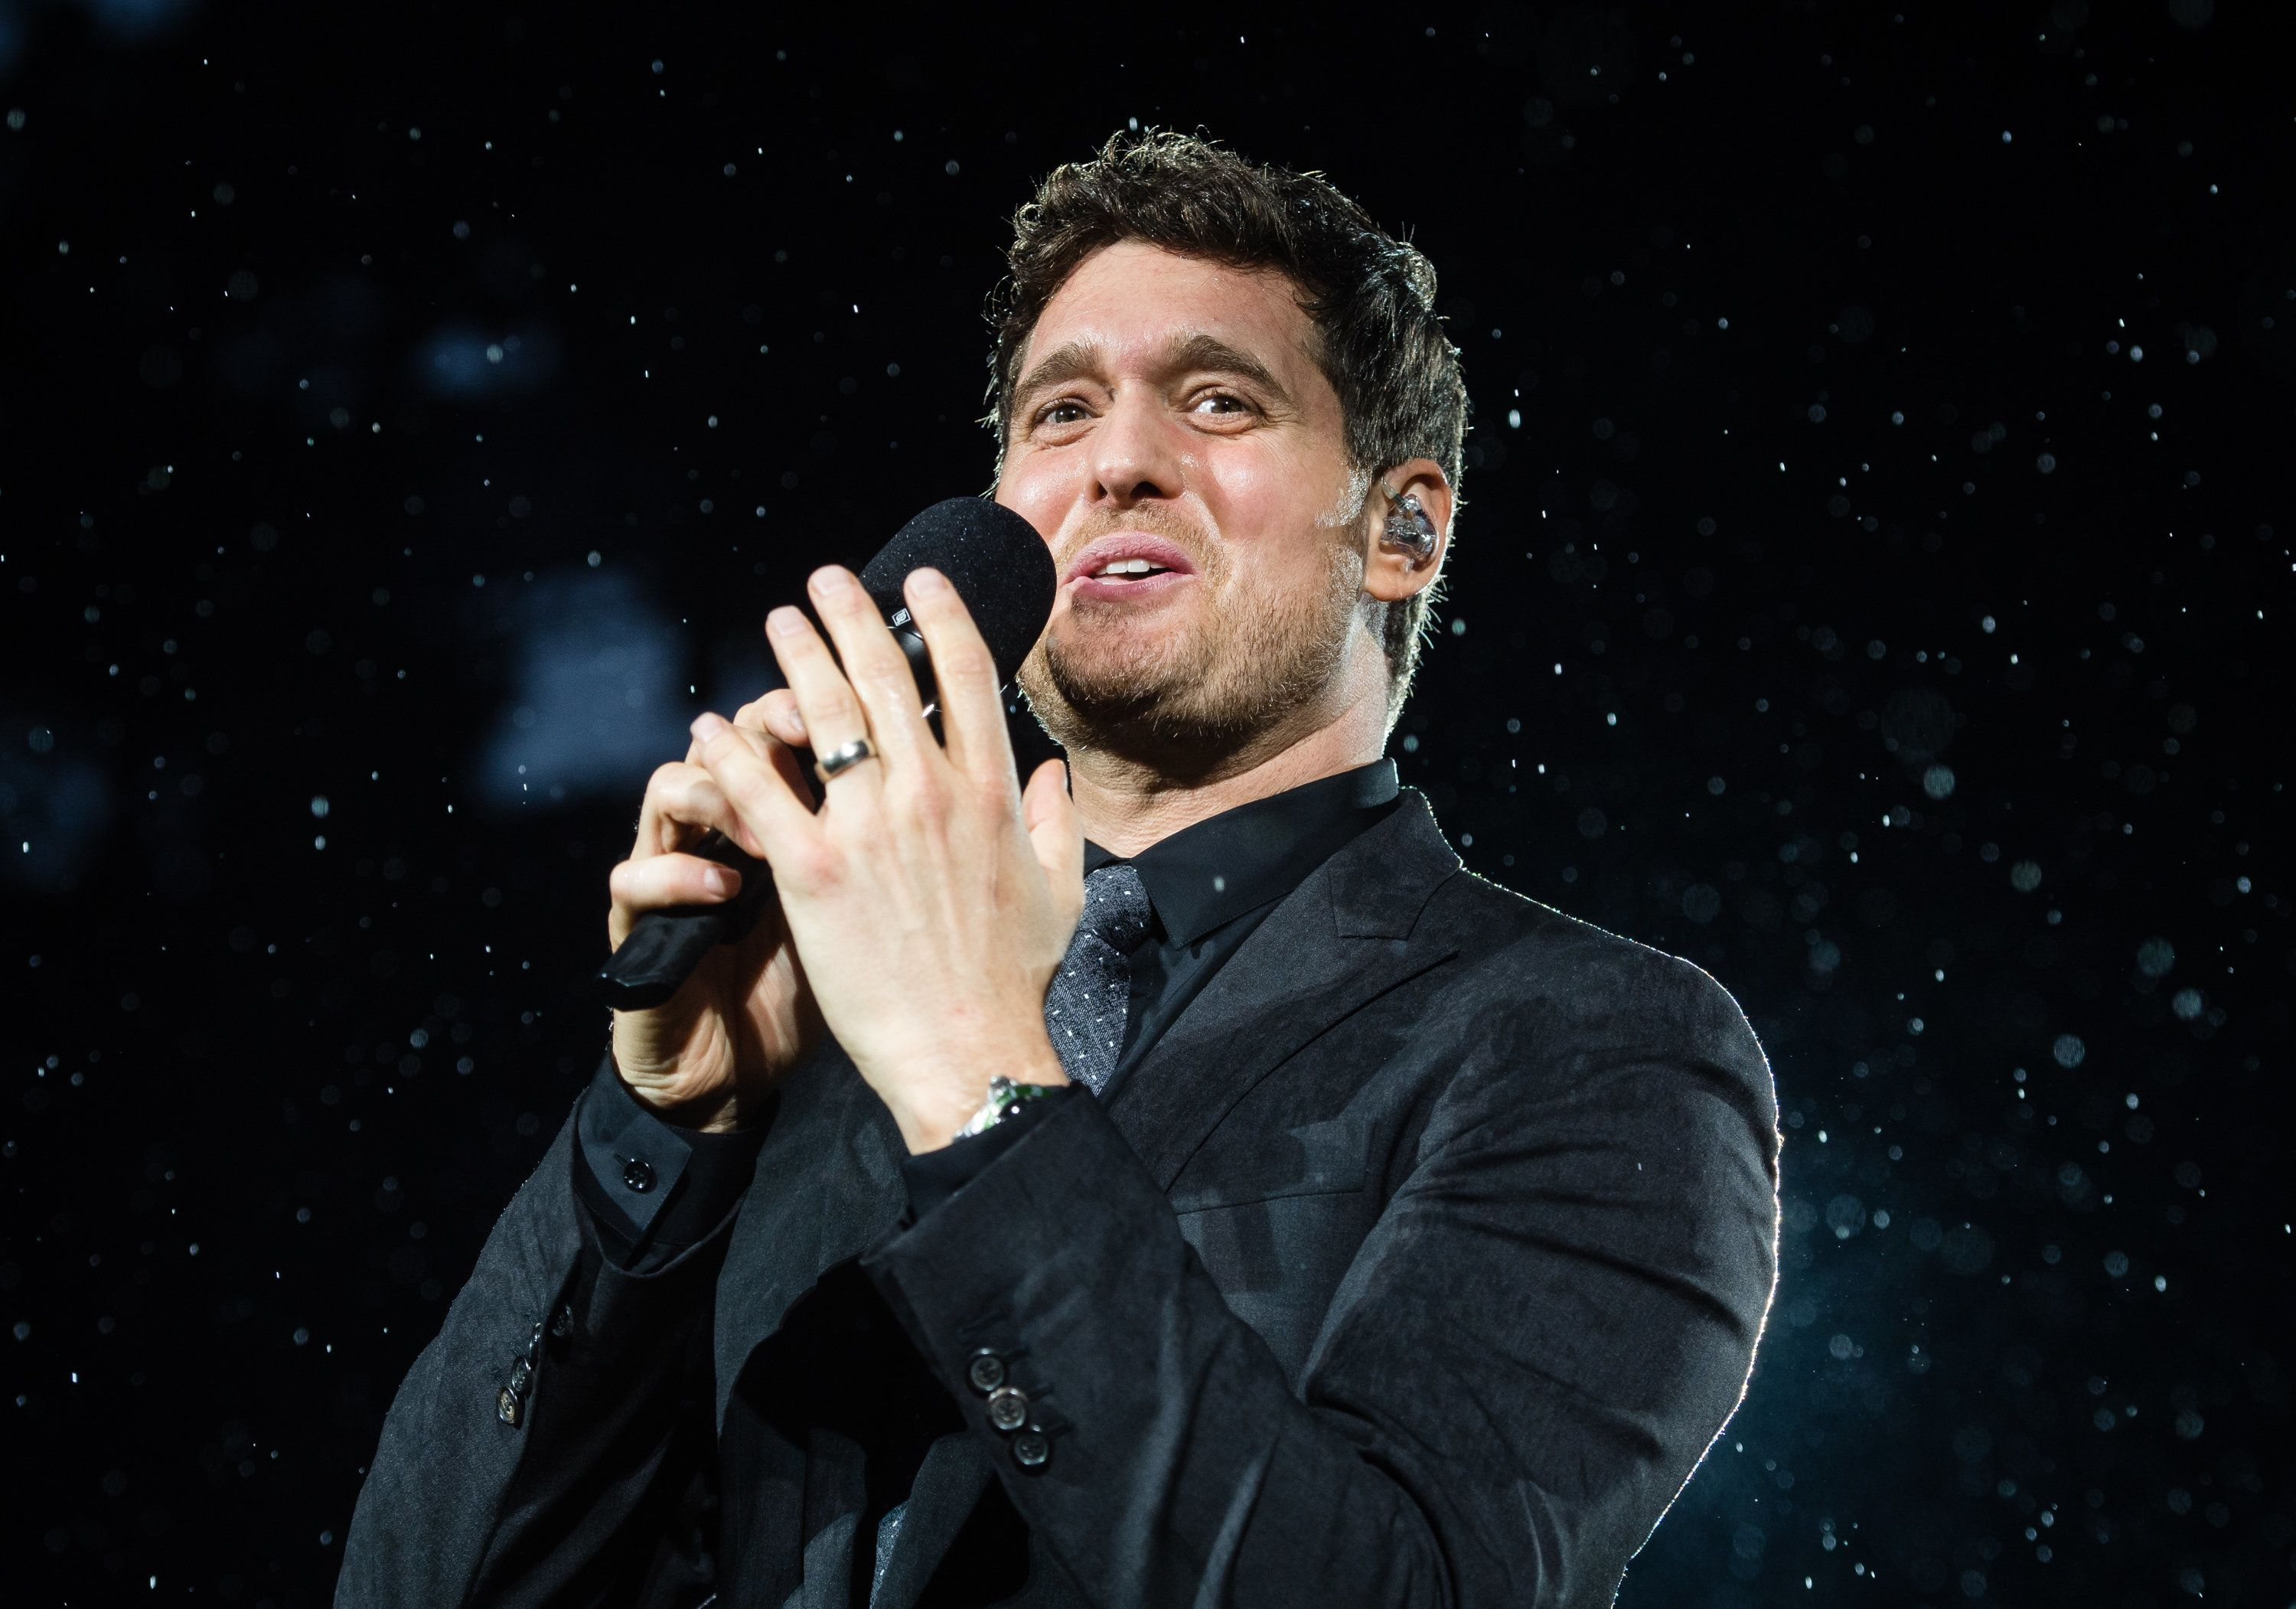 Michael Bublé Makes Emotional Return To Stage In London Following Son's Cancer